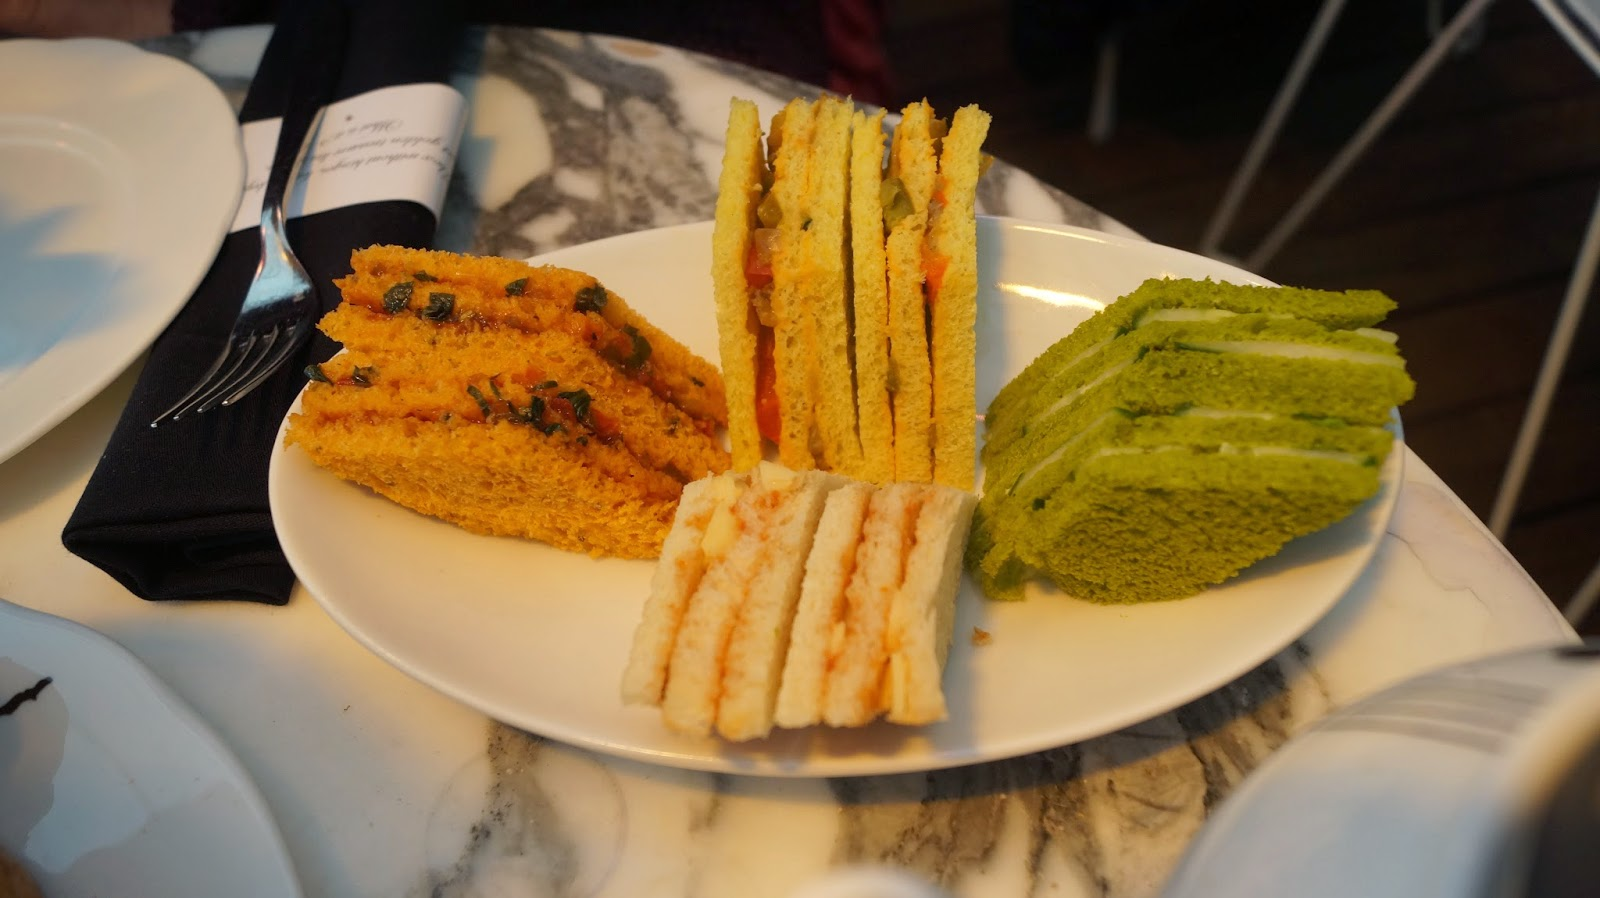 http://cupcakeluvs.blogspot.dk/2015/04/afternoon-tea-i-london-afternoon-tea-in.html